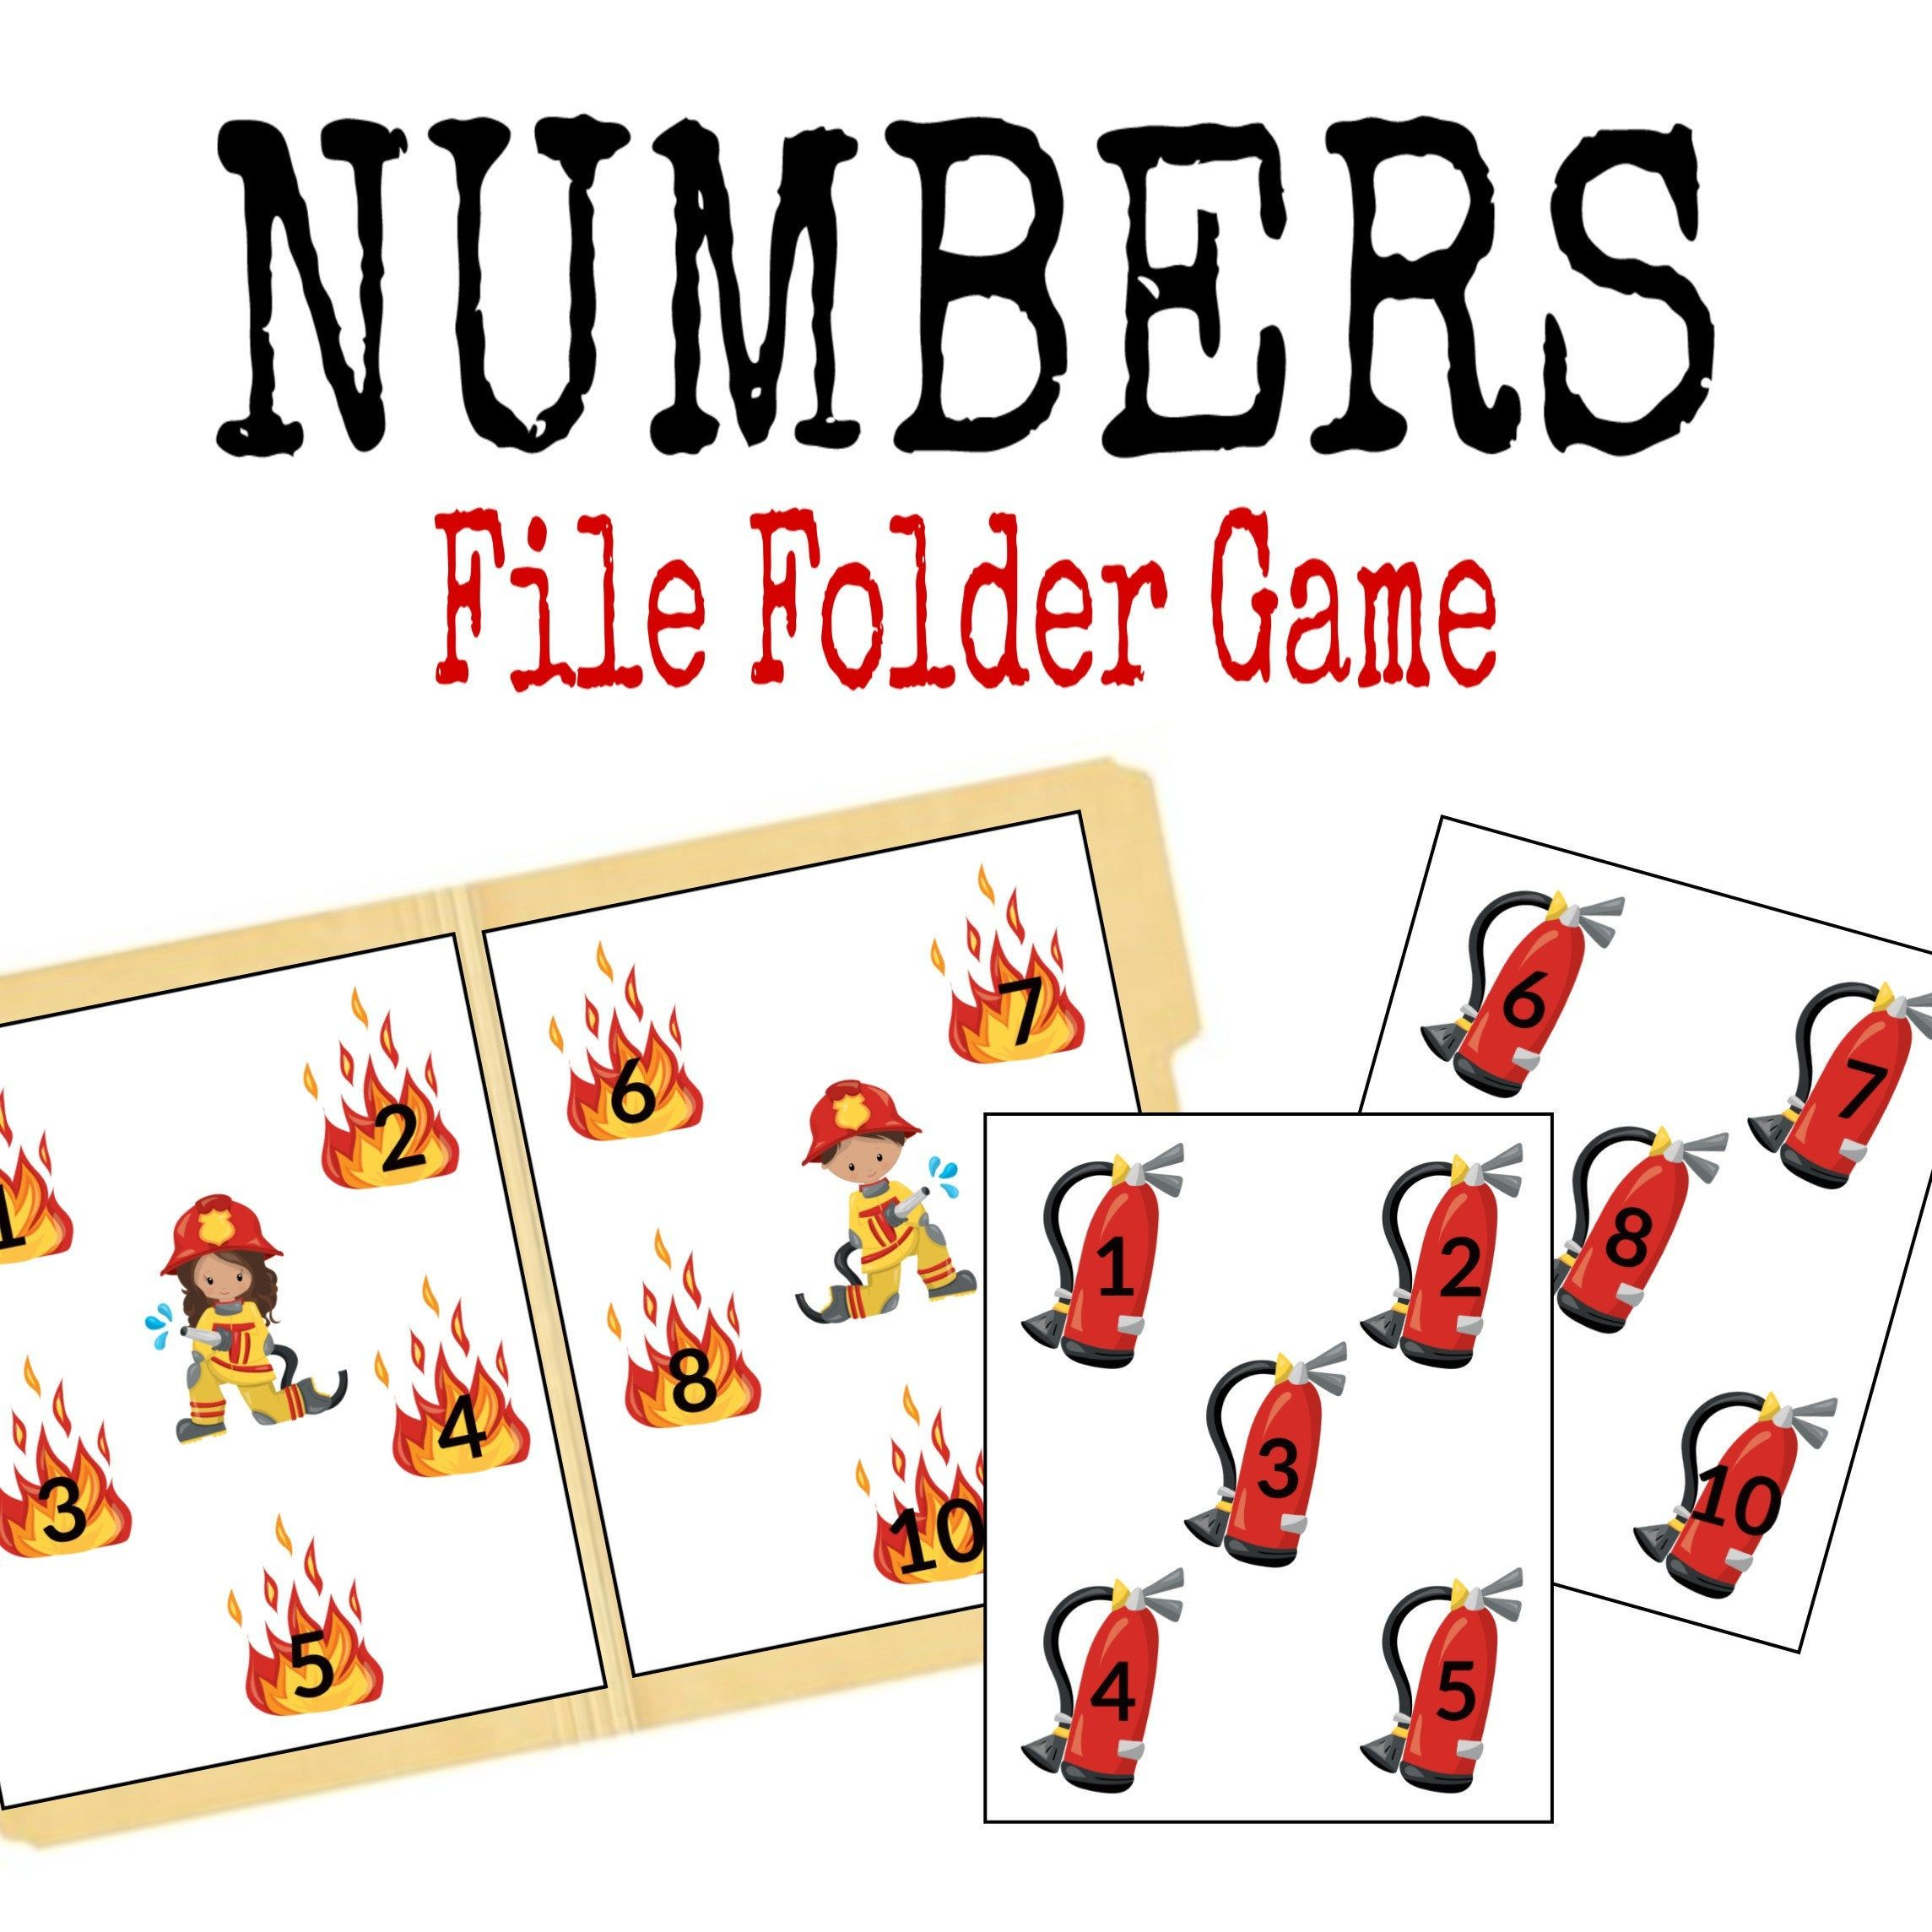 Firefighter File Folder Game Learning Activity Printable